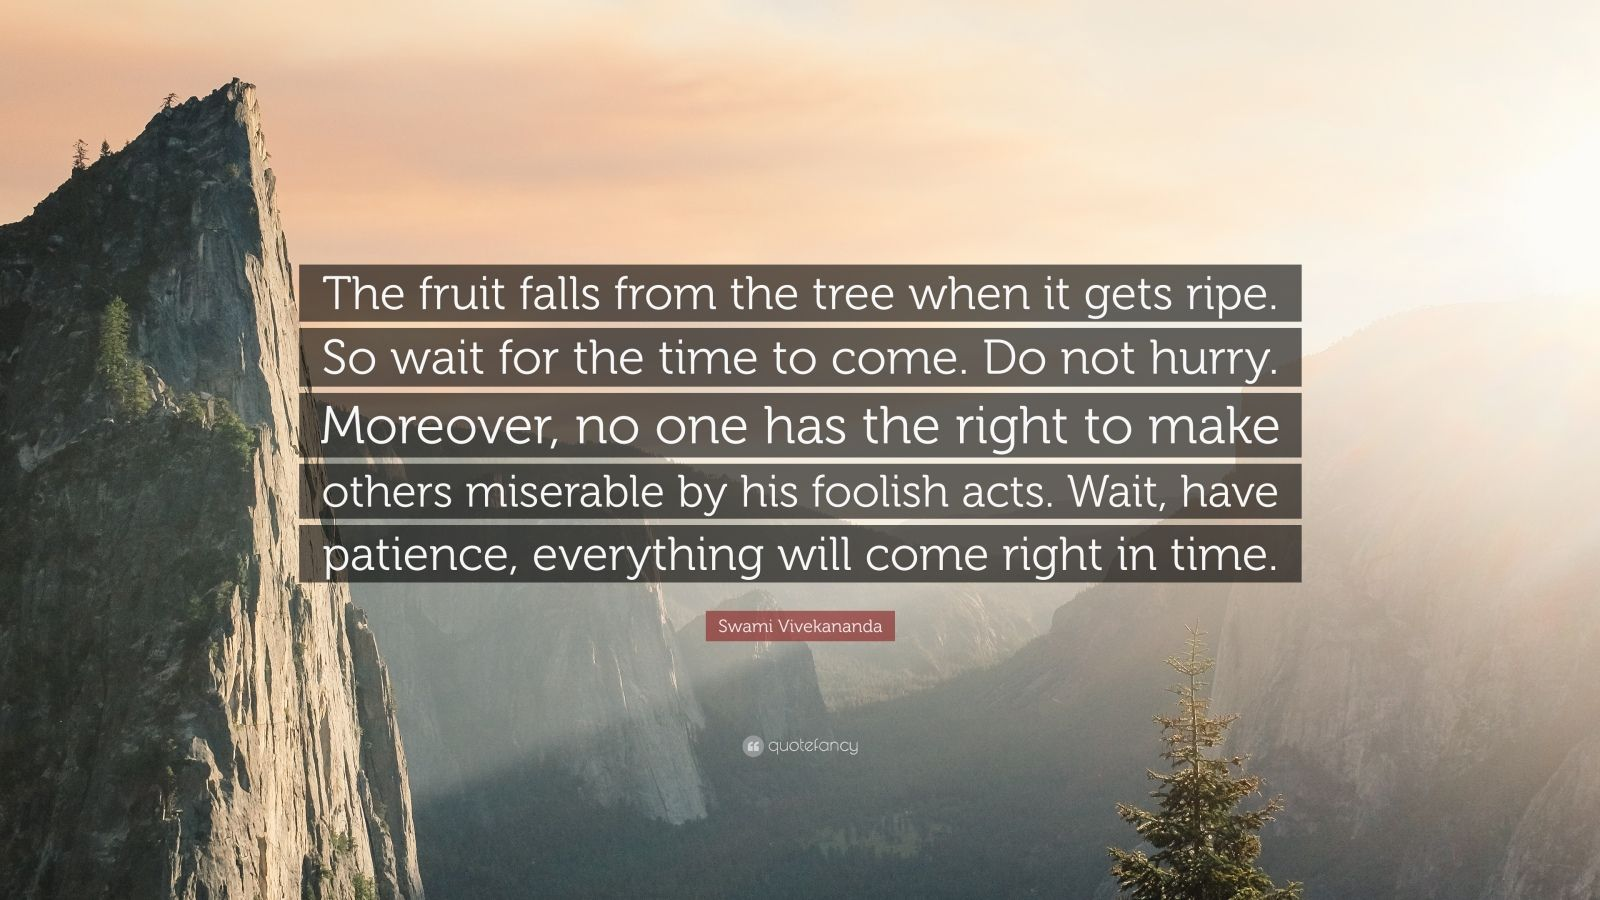 "Swami Vivekananda Quote: ""The fruit falls from the tree when it gets ripe. So wait for the time to come. Do not hurry. Moreover, no one has the right to make others miserable by his foolish acts. Wait, have patience, everything will come right in time."""